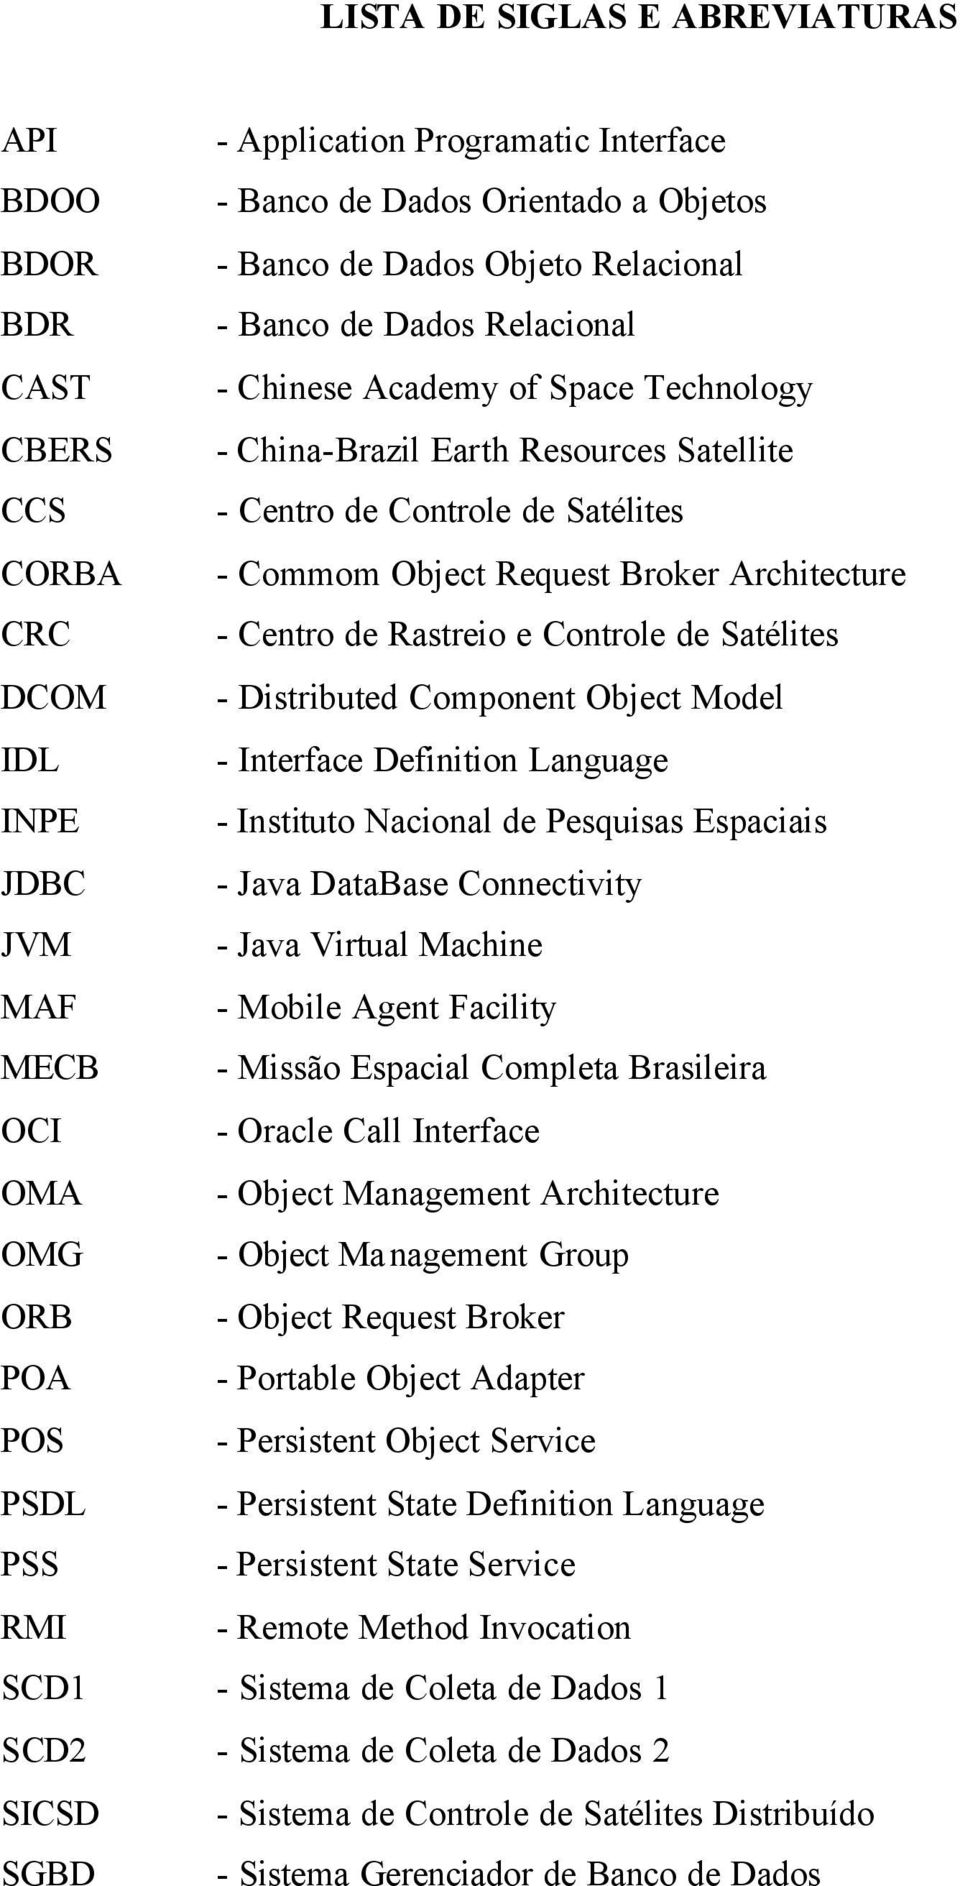 de Satélites DCOM - Distributed Component Object Model IDL - Interface Definition Language INPE - Instituto Nacional de Pesquisas Espaciais JDBC - Java DataBase Connectivity JVM - Java Virtual